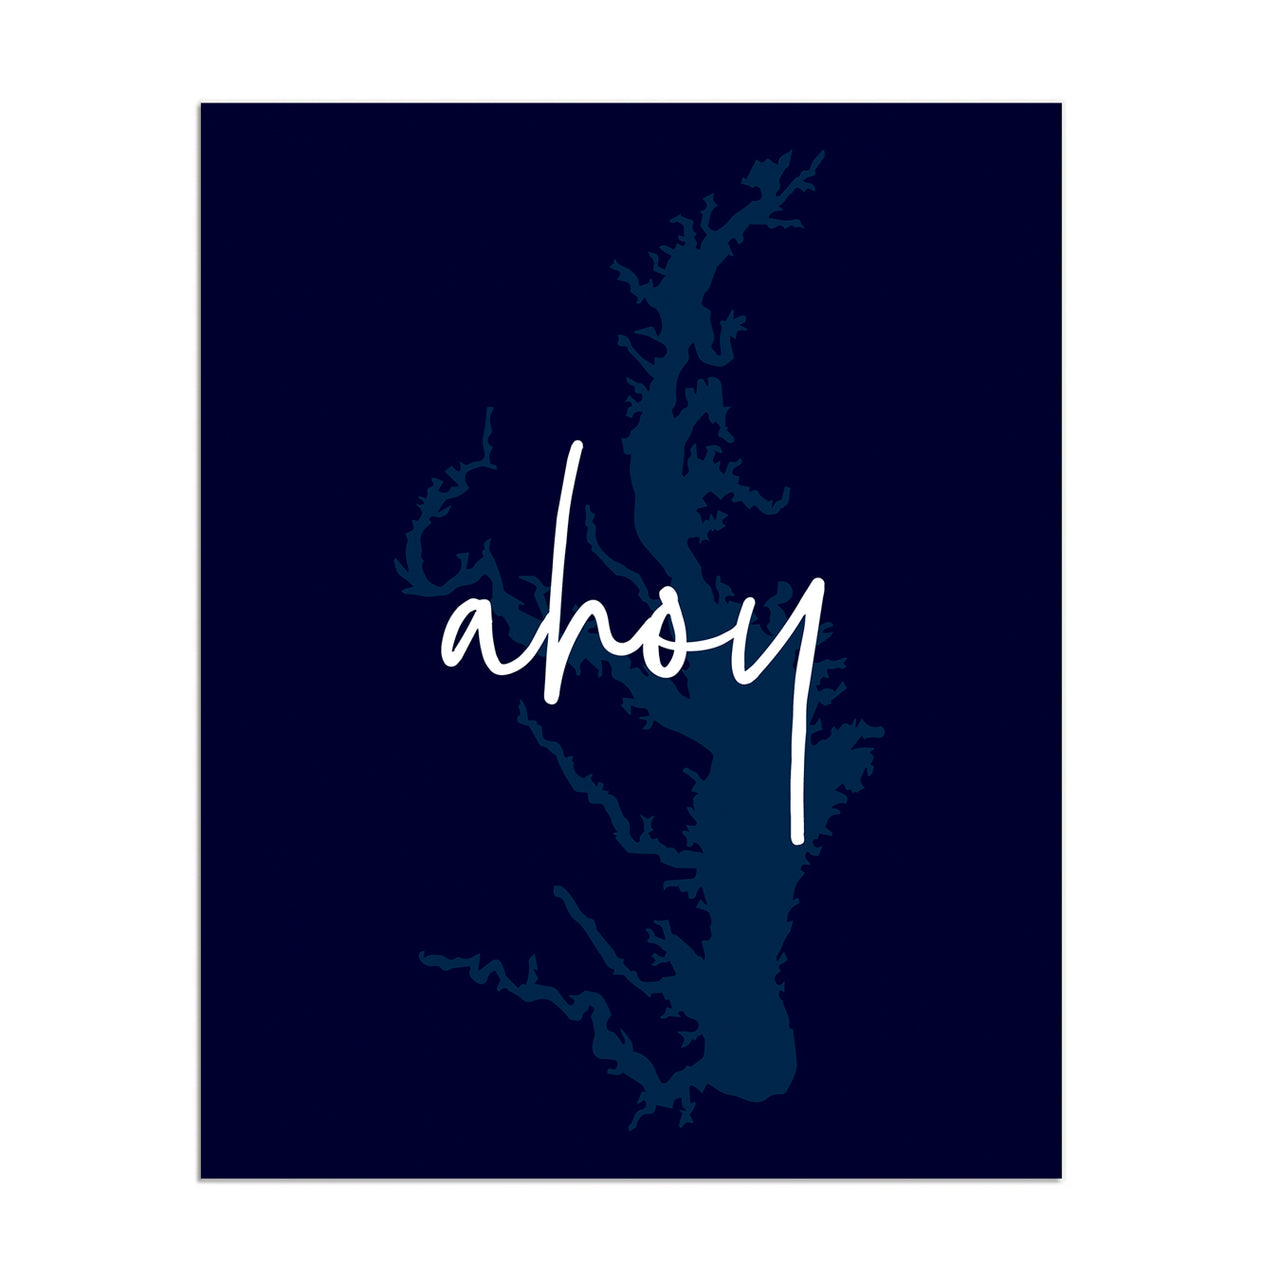 Ahoy - Chesapeake Bay Print